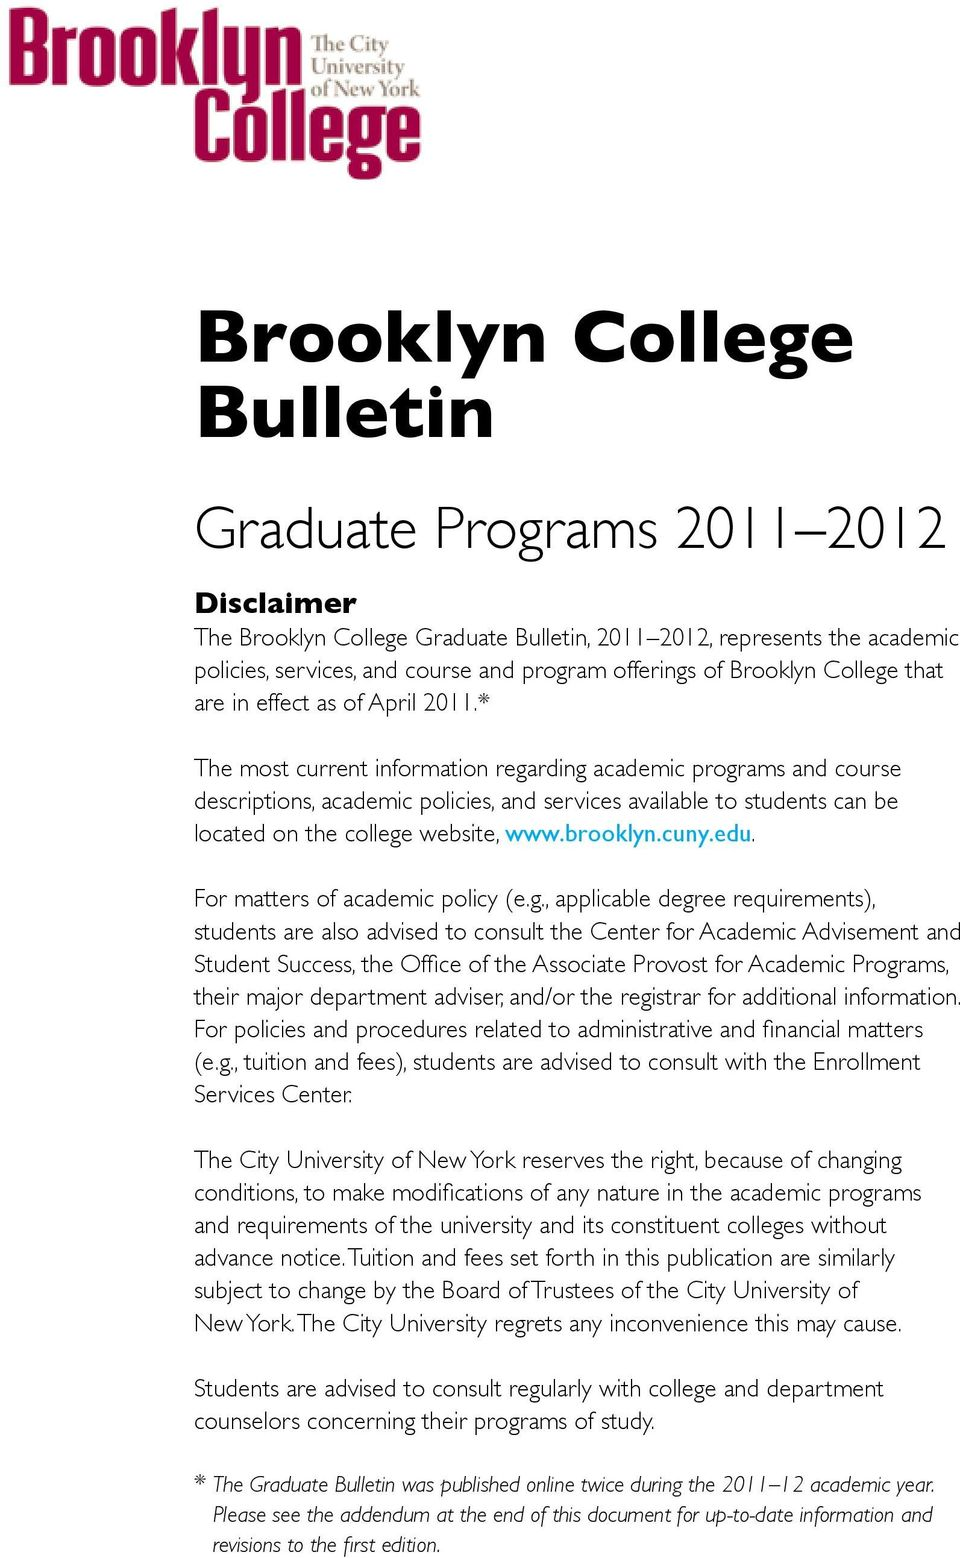 * The most current information regarding academic programs and course descriptions, academic policies, and services available to students can be located on the college website, www.brooklyn.cuny.edu.